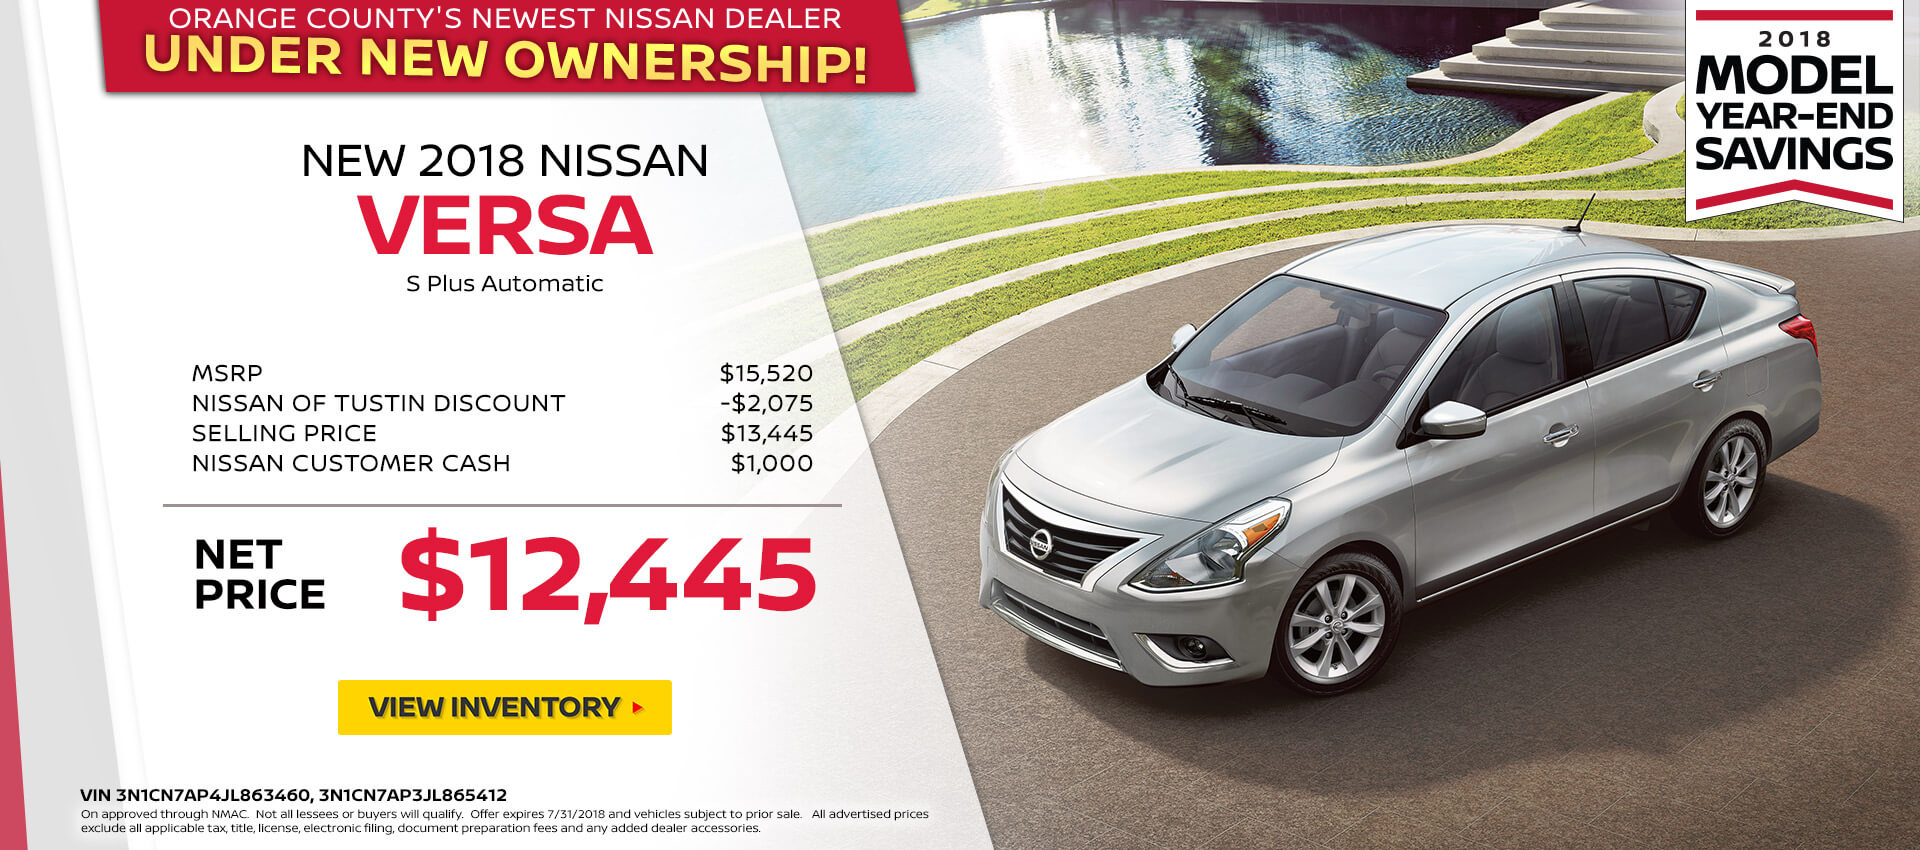 2018 Nissan Versa S Purchase